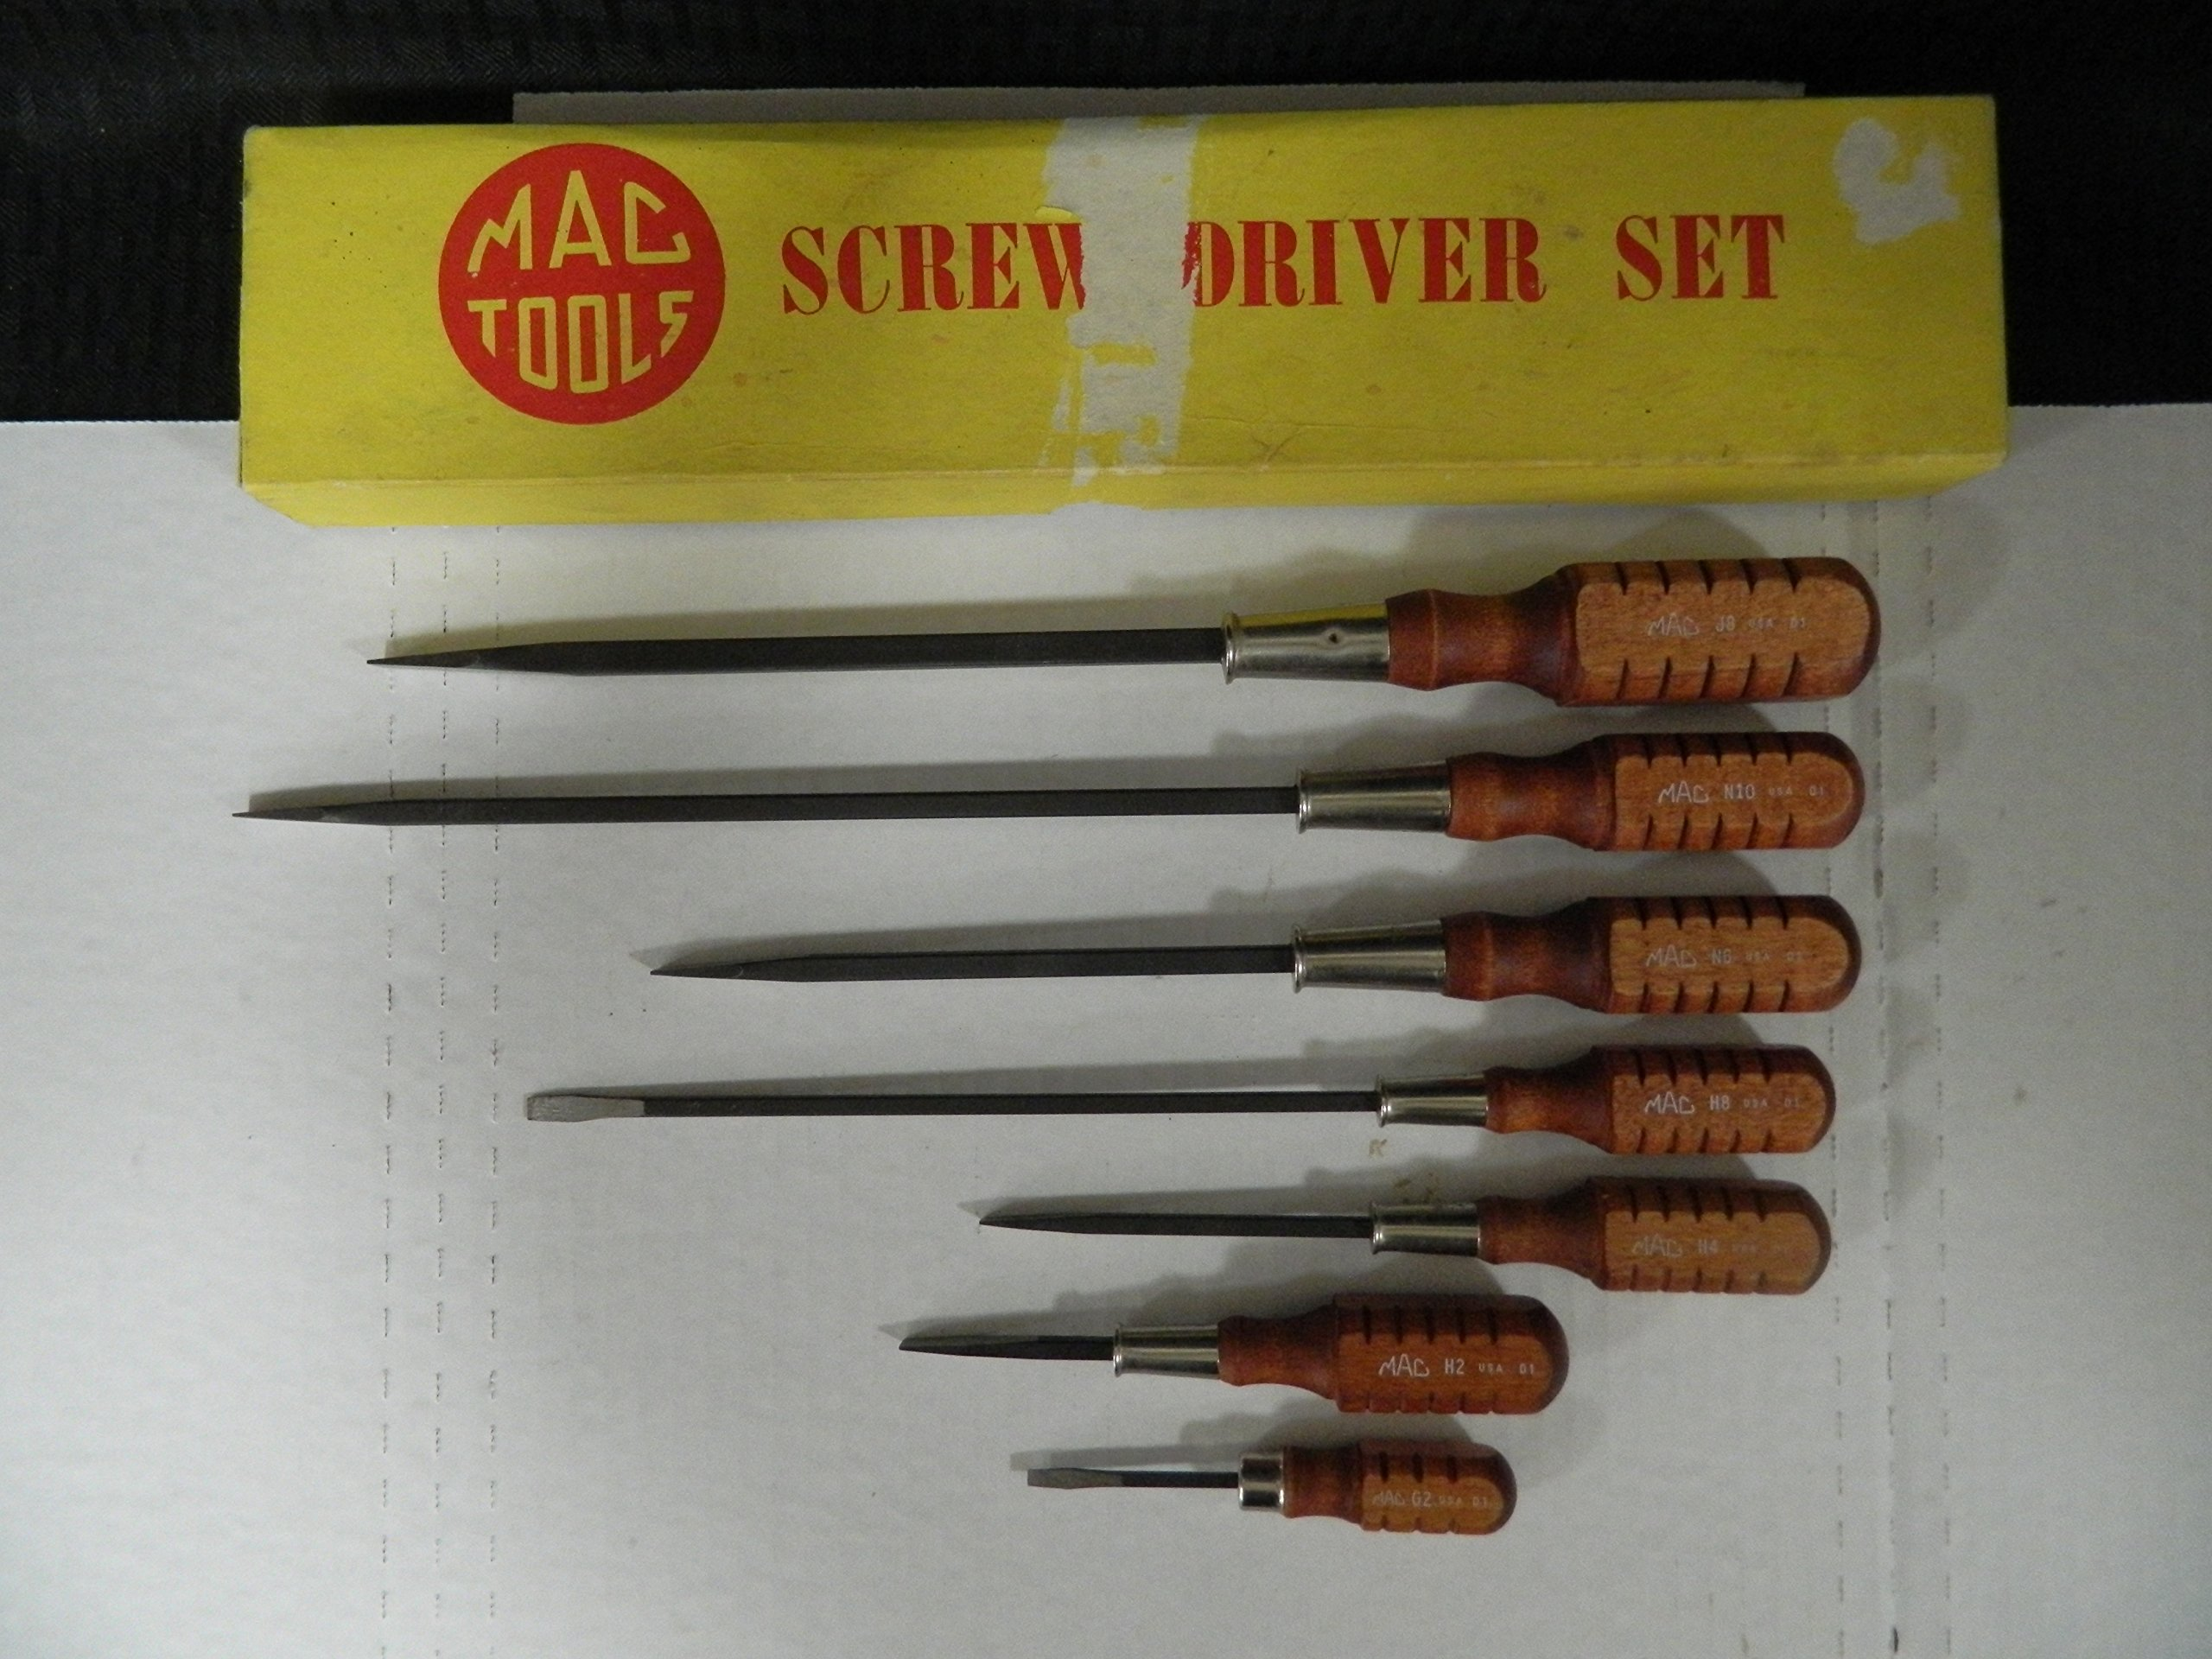 Mac Tools 7 Piece Vintage/Rare Wooden Flat Head Screwdriver Set, Made in USA in the 80's, Part #N10 by Mac Tools